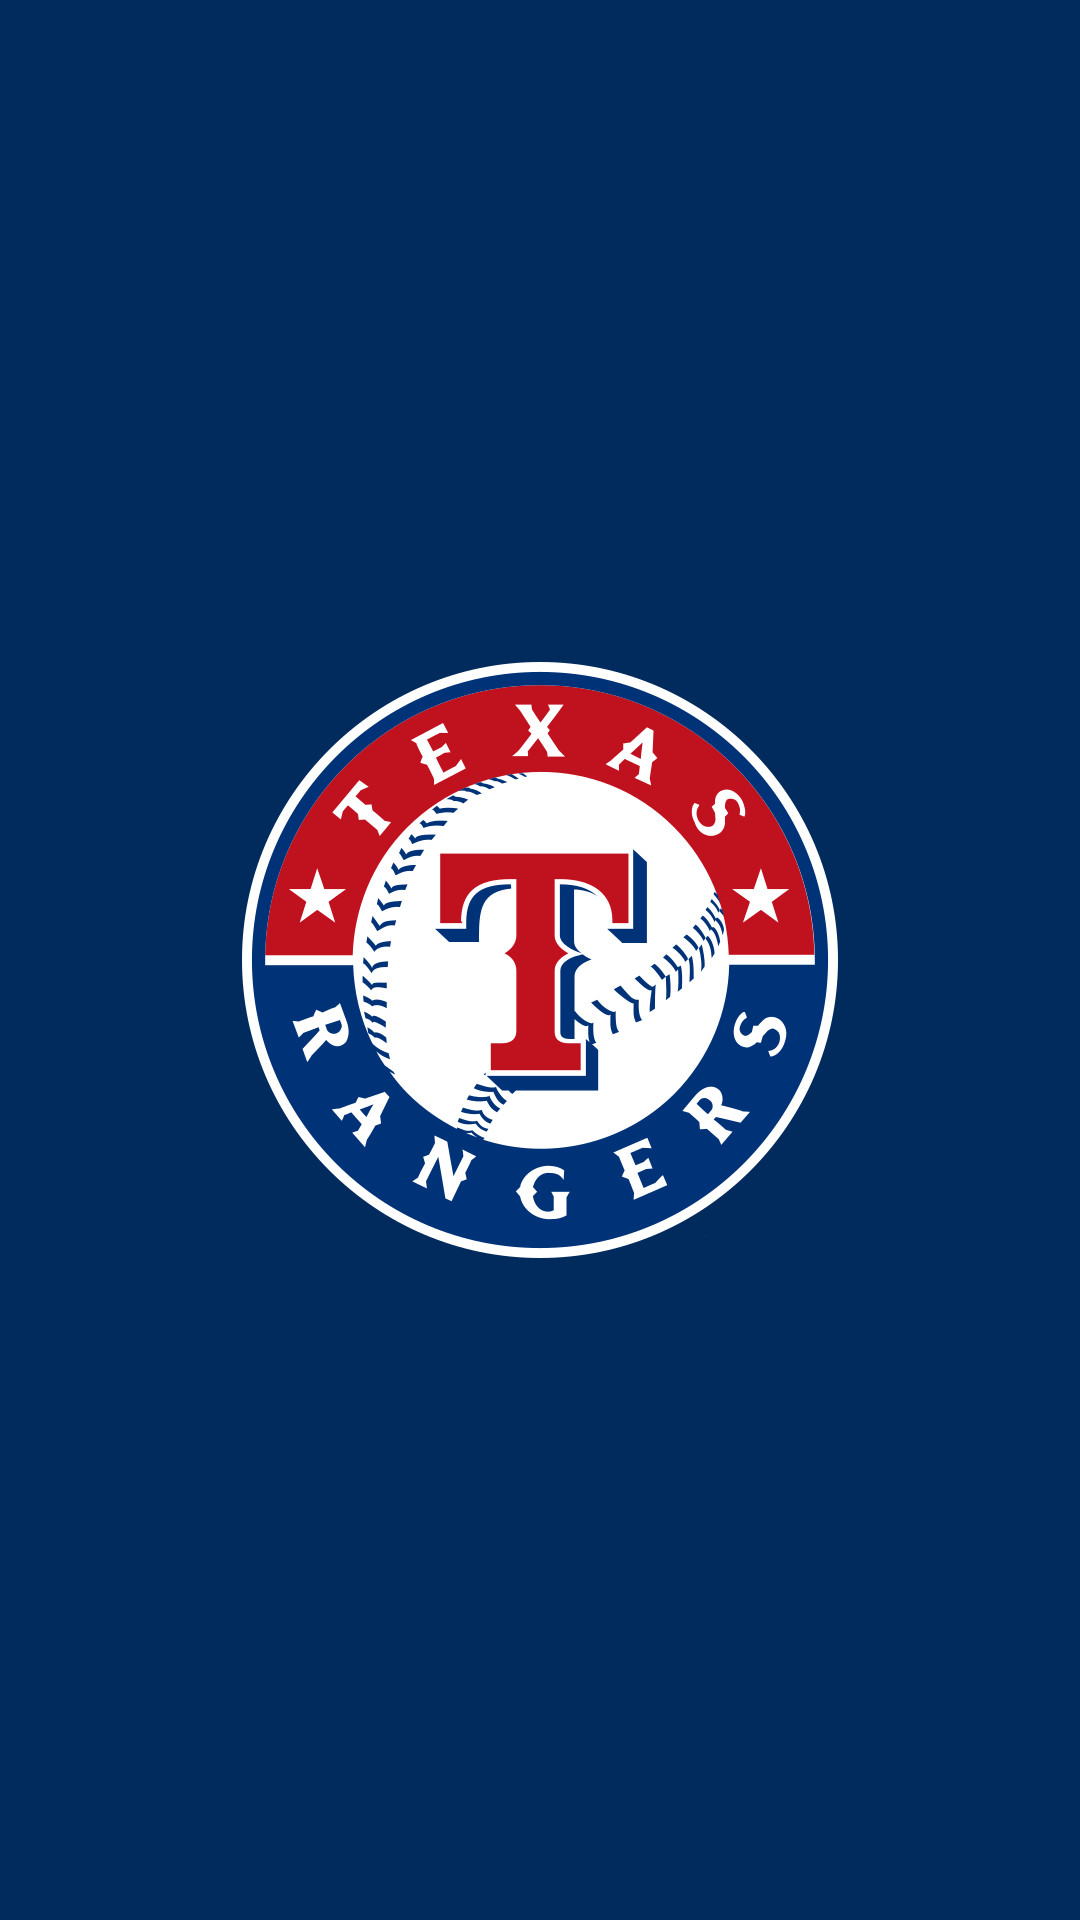 Texas Rangers iPhone Wallpaper 54 images 1080x1920